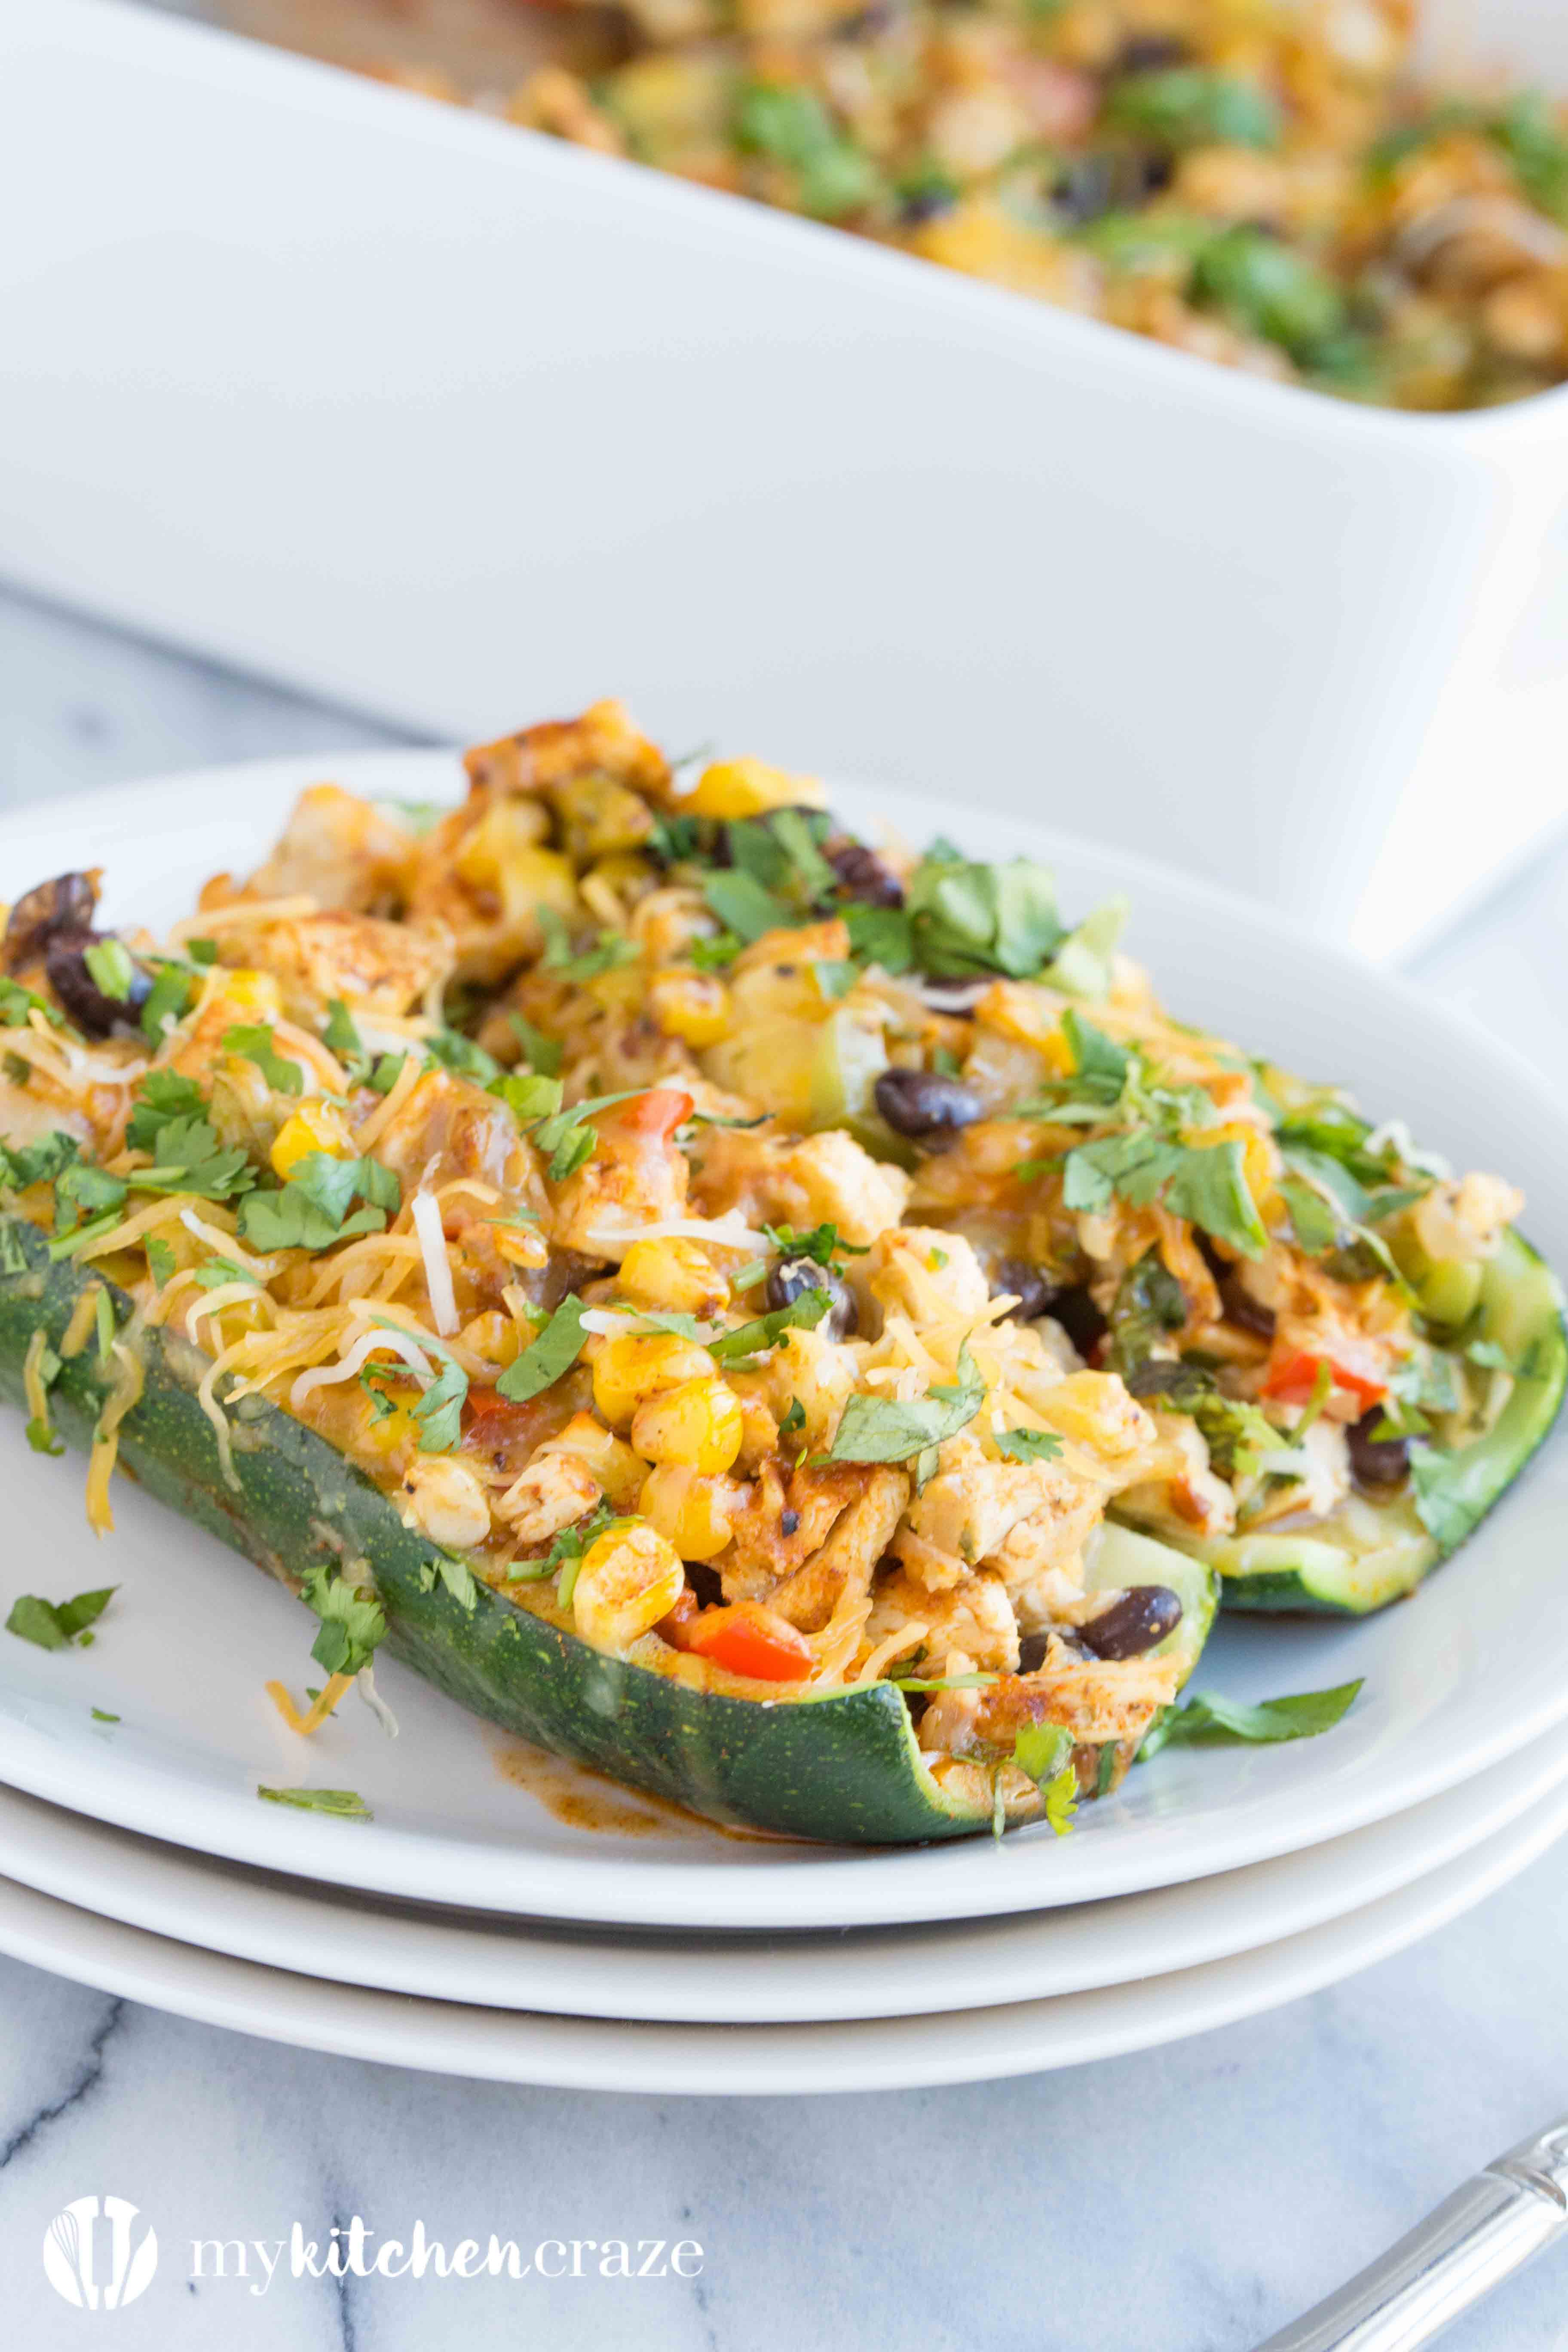 Chicken Enchilada Zucchini Boats are filled with all the same delicious flavors as regular enchiladas, but are healthier! Loaded with tons of veggies and yummy flavors, these enchiladas are great for dinner!